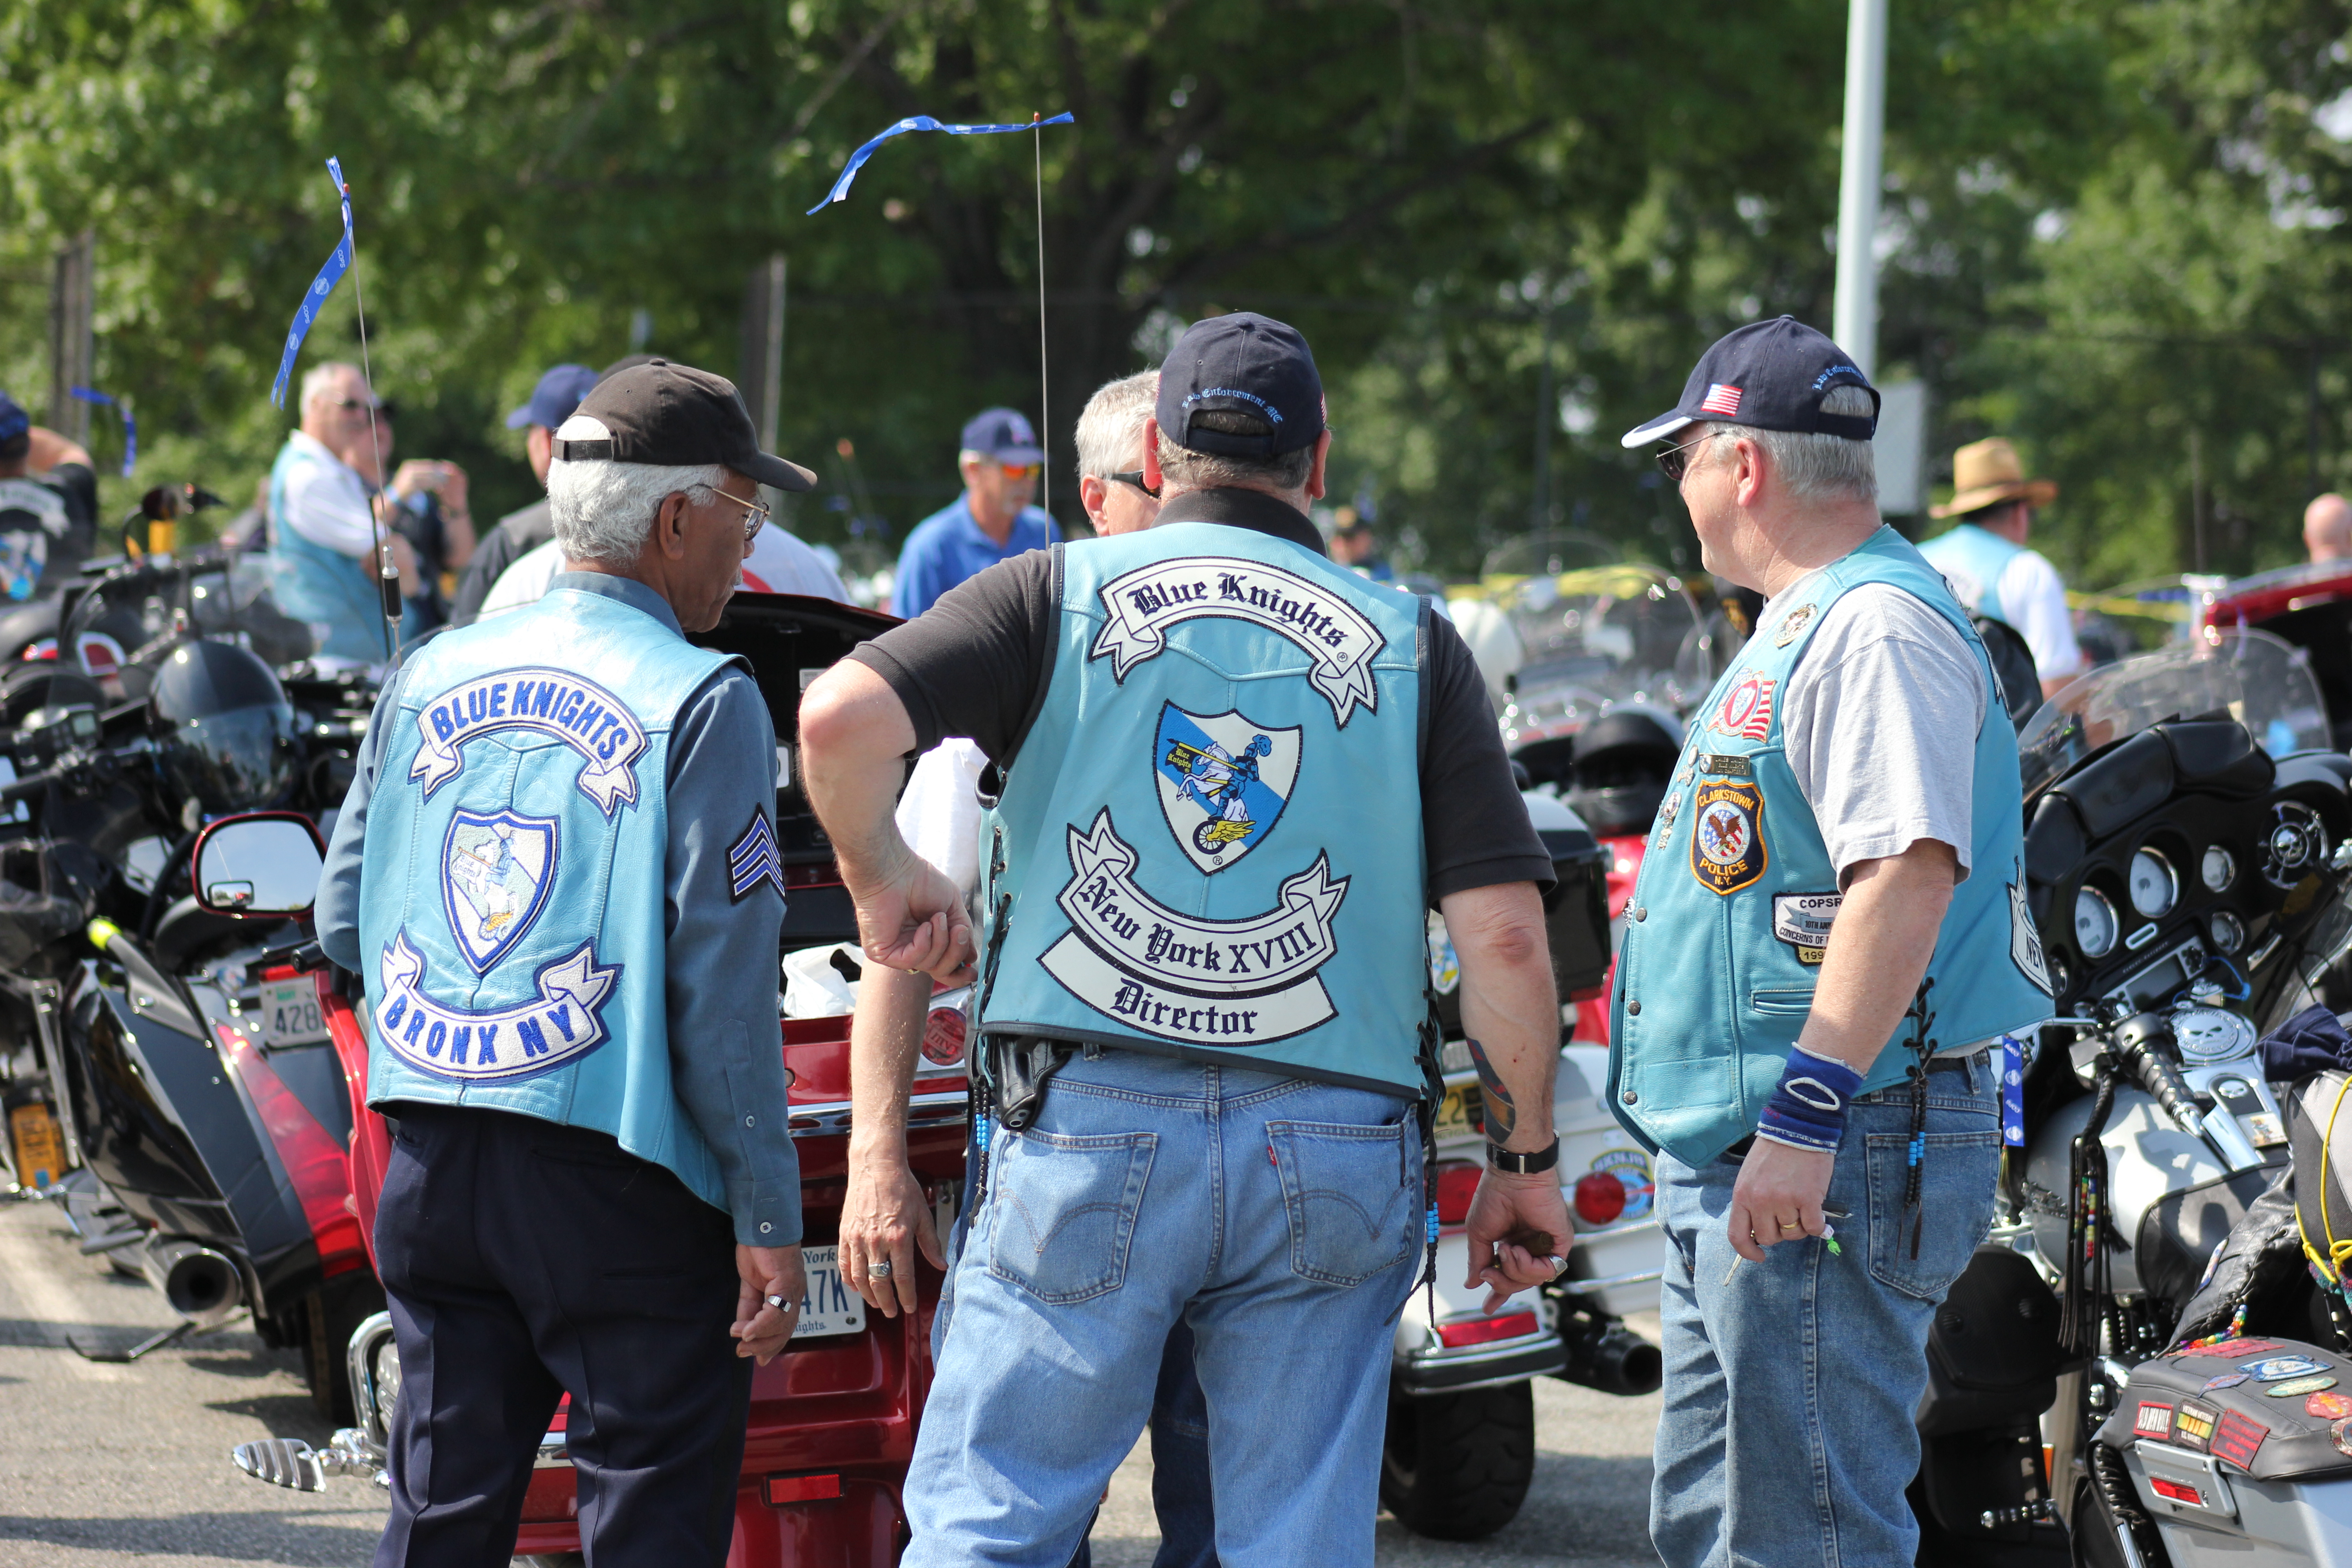 With blue knights xxx motorcycle club